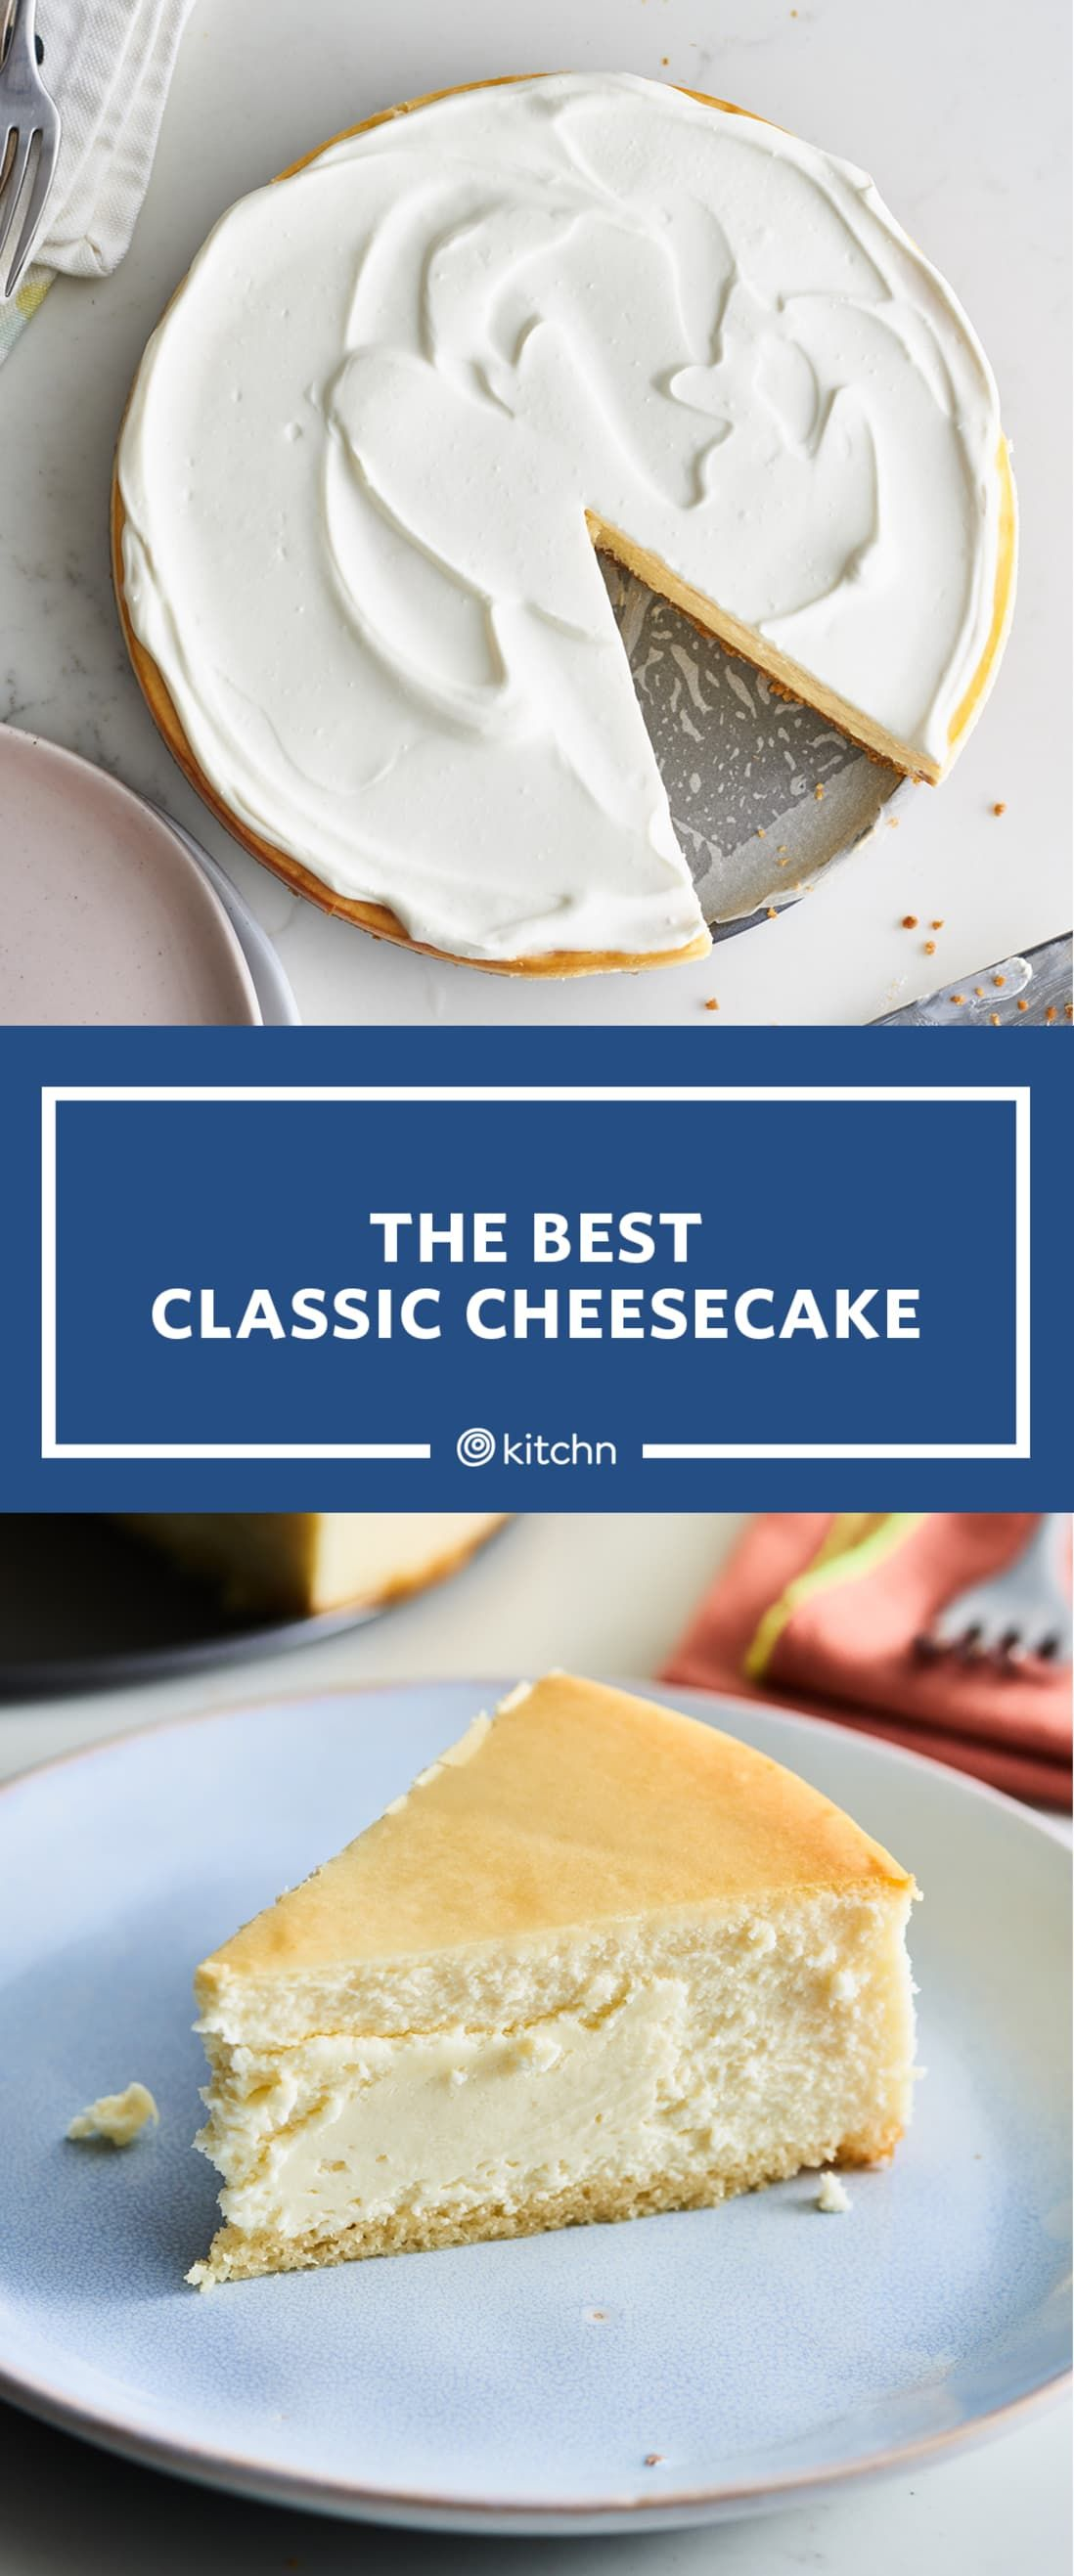 We Tested 4 Famous Cheesecake Recipes And Found A Clear Winner Original Cheesecake Recipe Cheesecake Recipes Classic Cheesecake Recipes